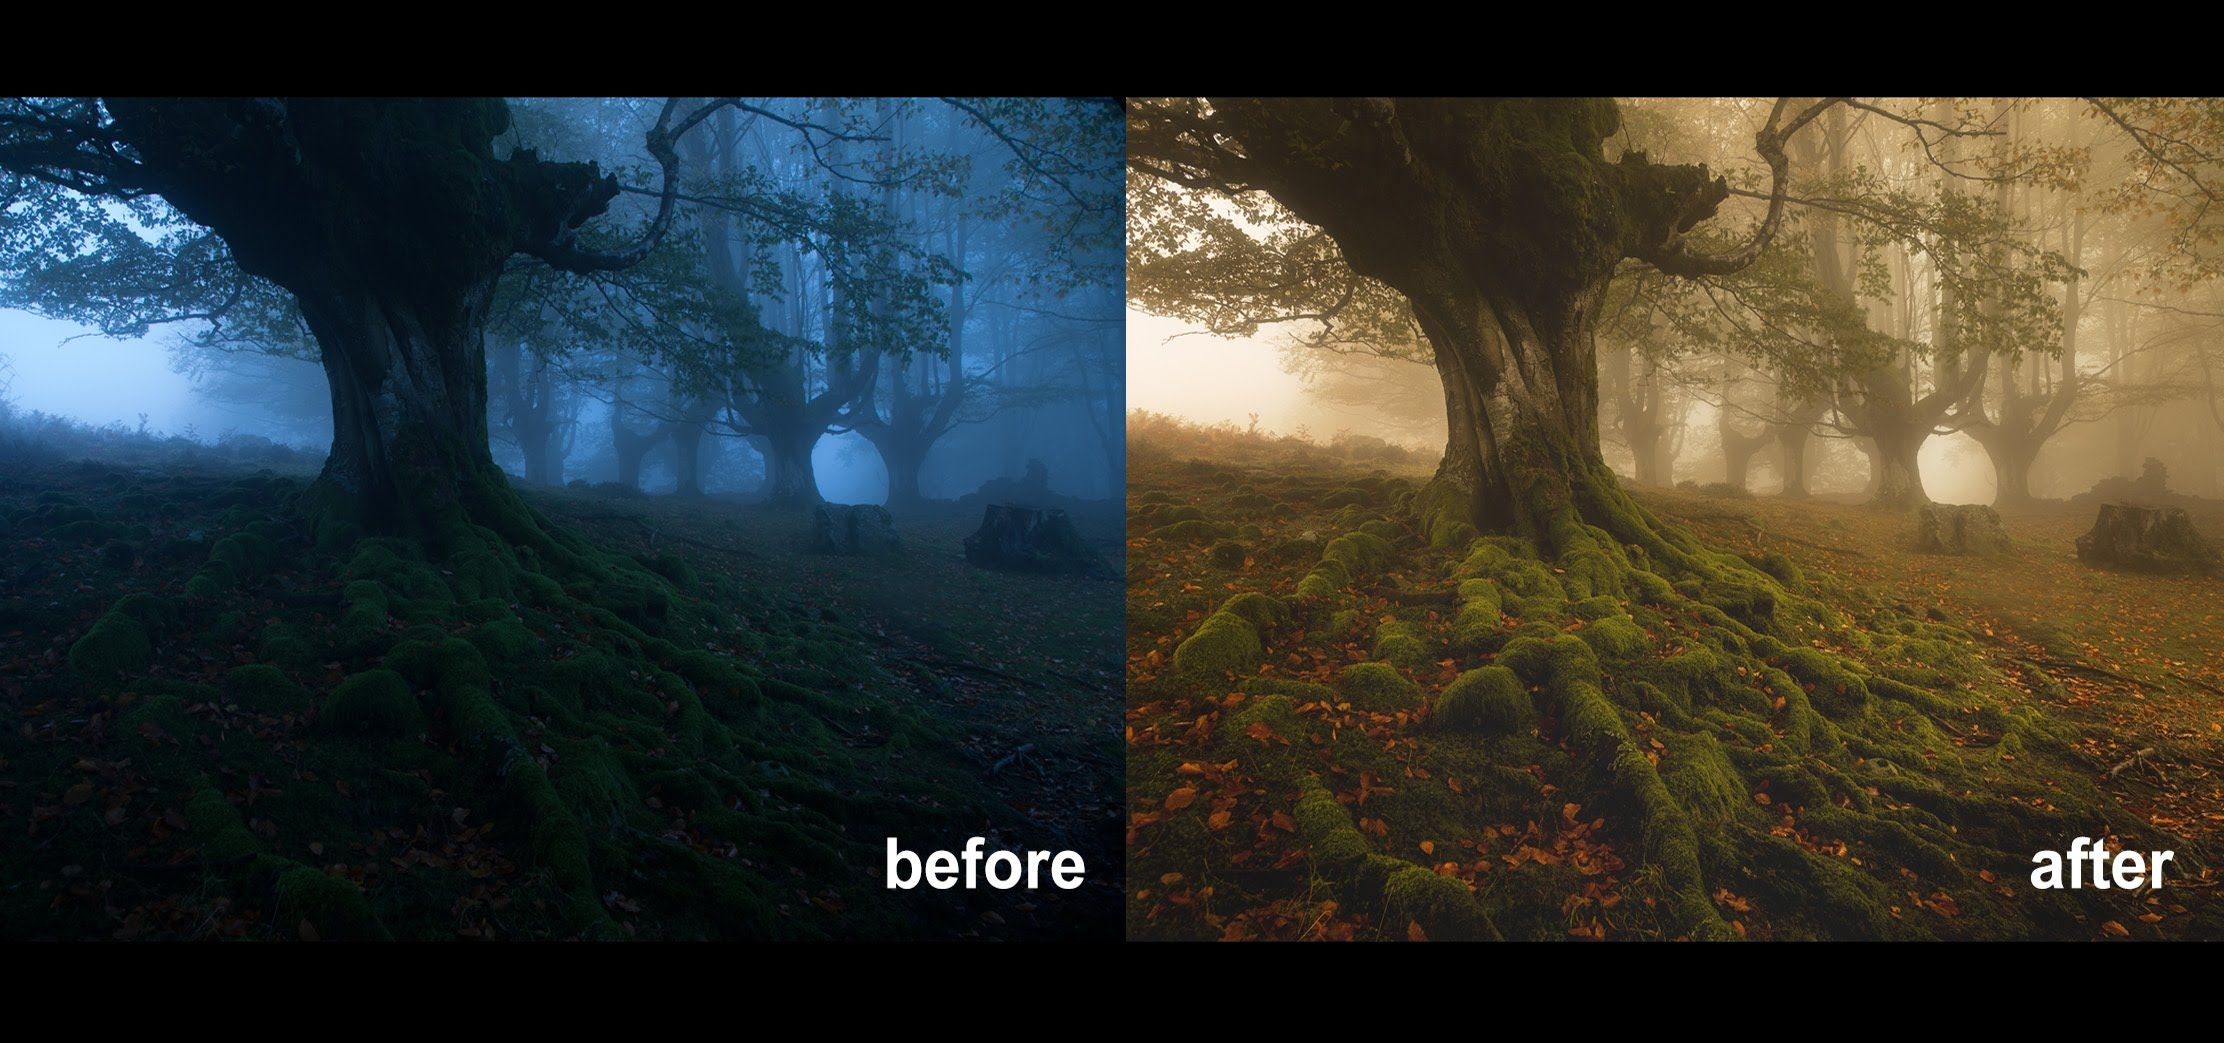 Cj7 How To Edit A Foggy Moody Landscape In Photoshop Dark Photo Manipulation Landscape Photoshop